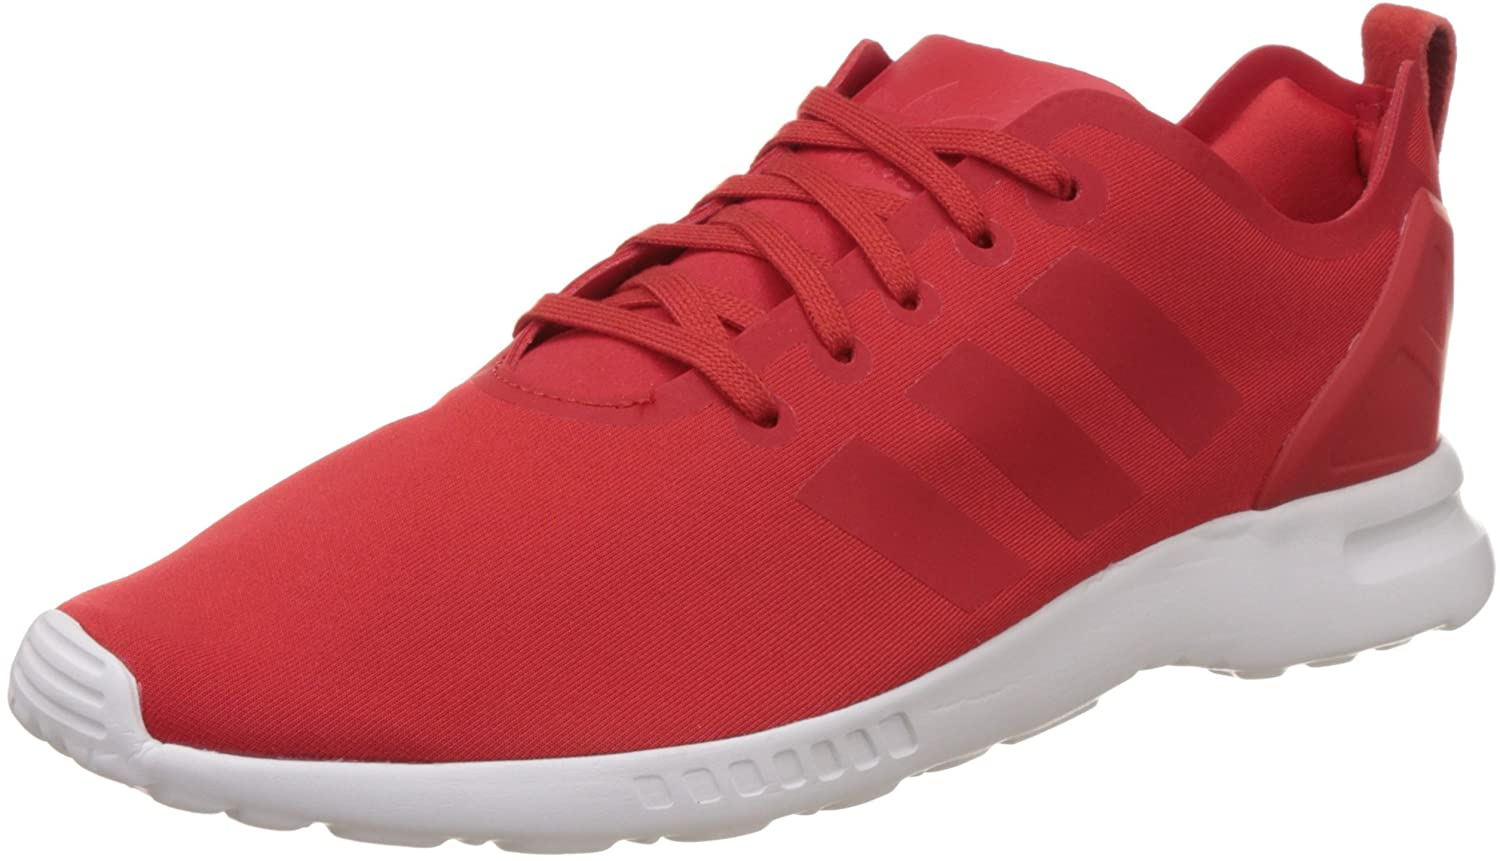 Adidas ZX Flux Smooth - Zapatillas Mujer 40 EU|Rojo - Rot (Lush Red S16-st/Lush Red S16-st/Core White)